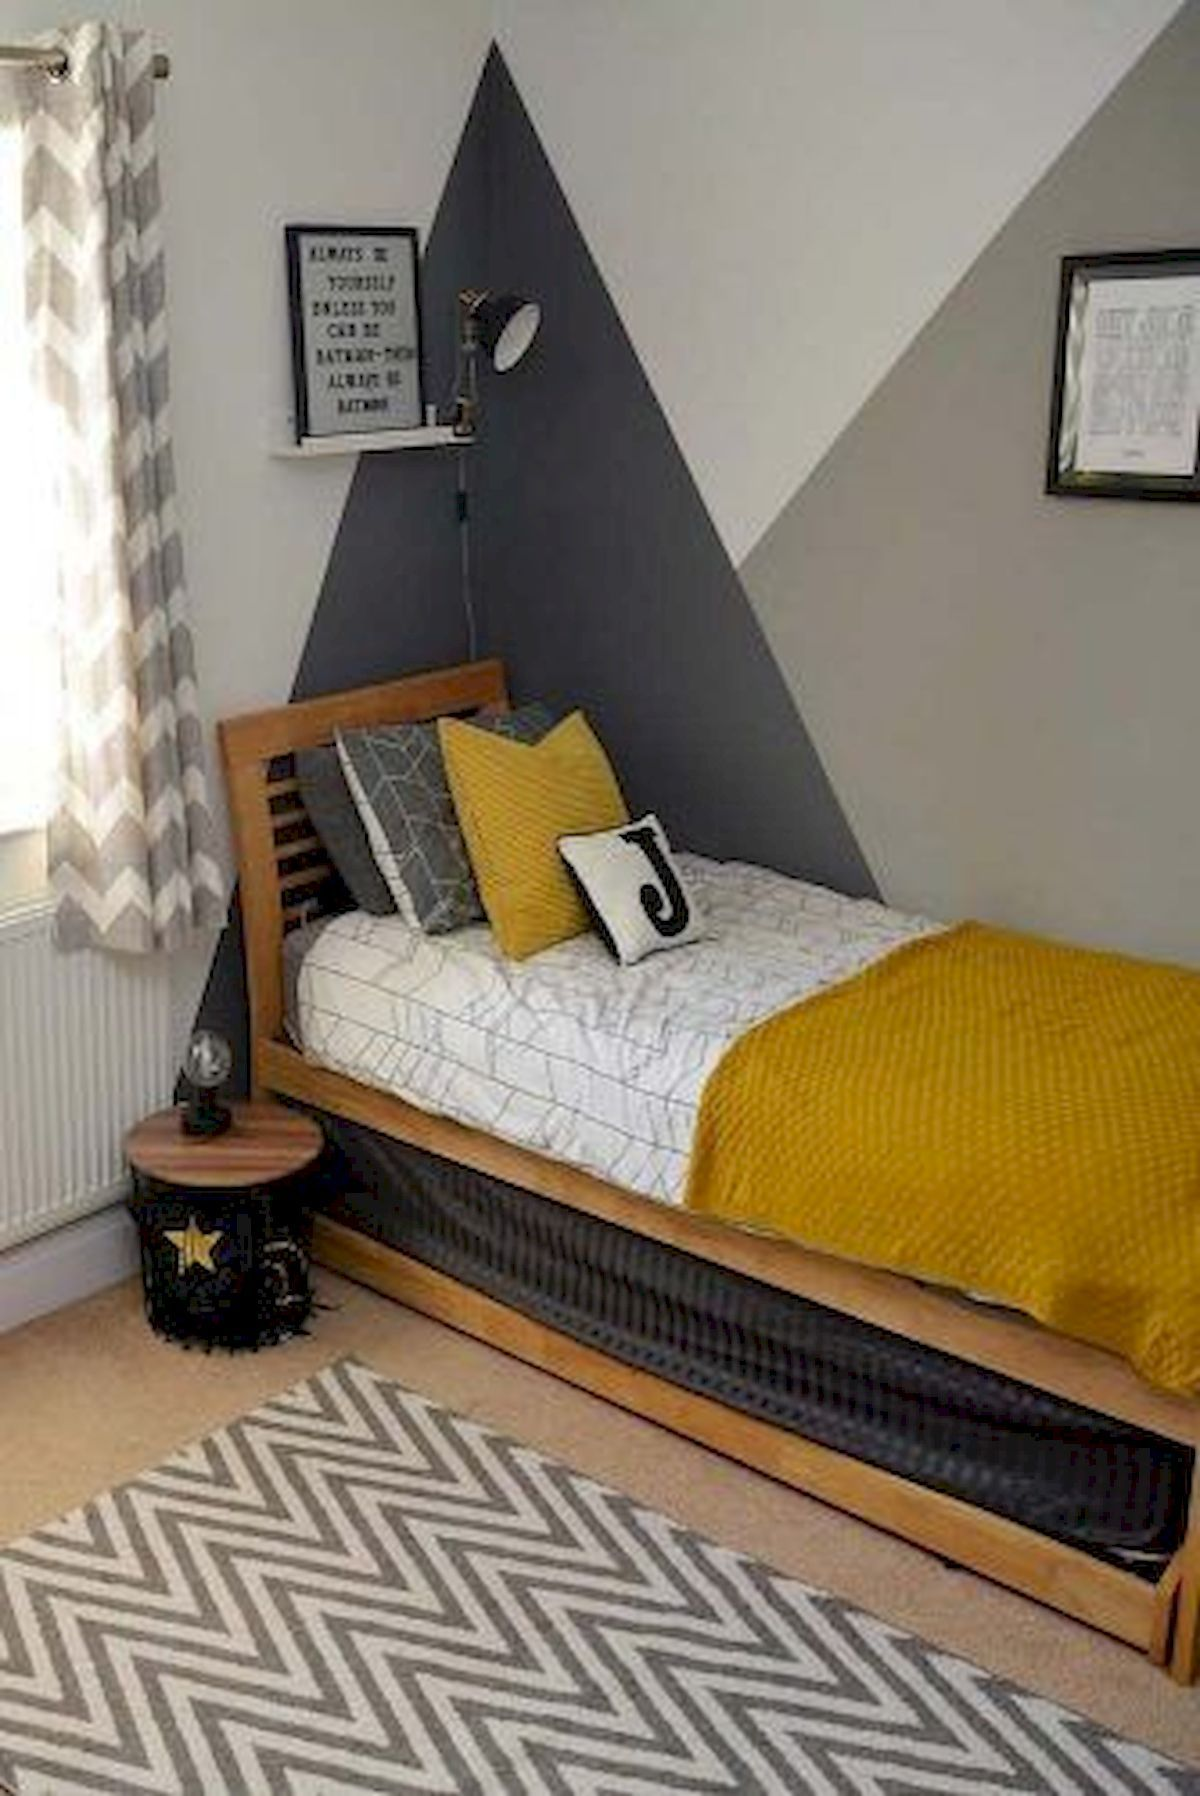 45 Cool Boys Bedroom Ideas To Try At Home Boy Bedroom Design Boys Bedroom Decor Boys Bedrooms